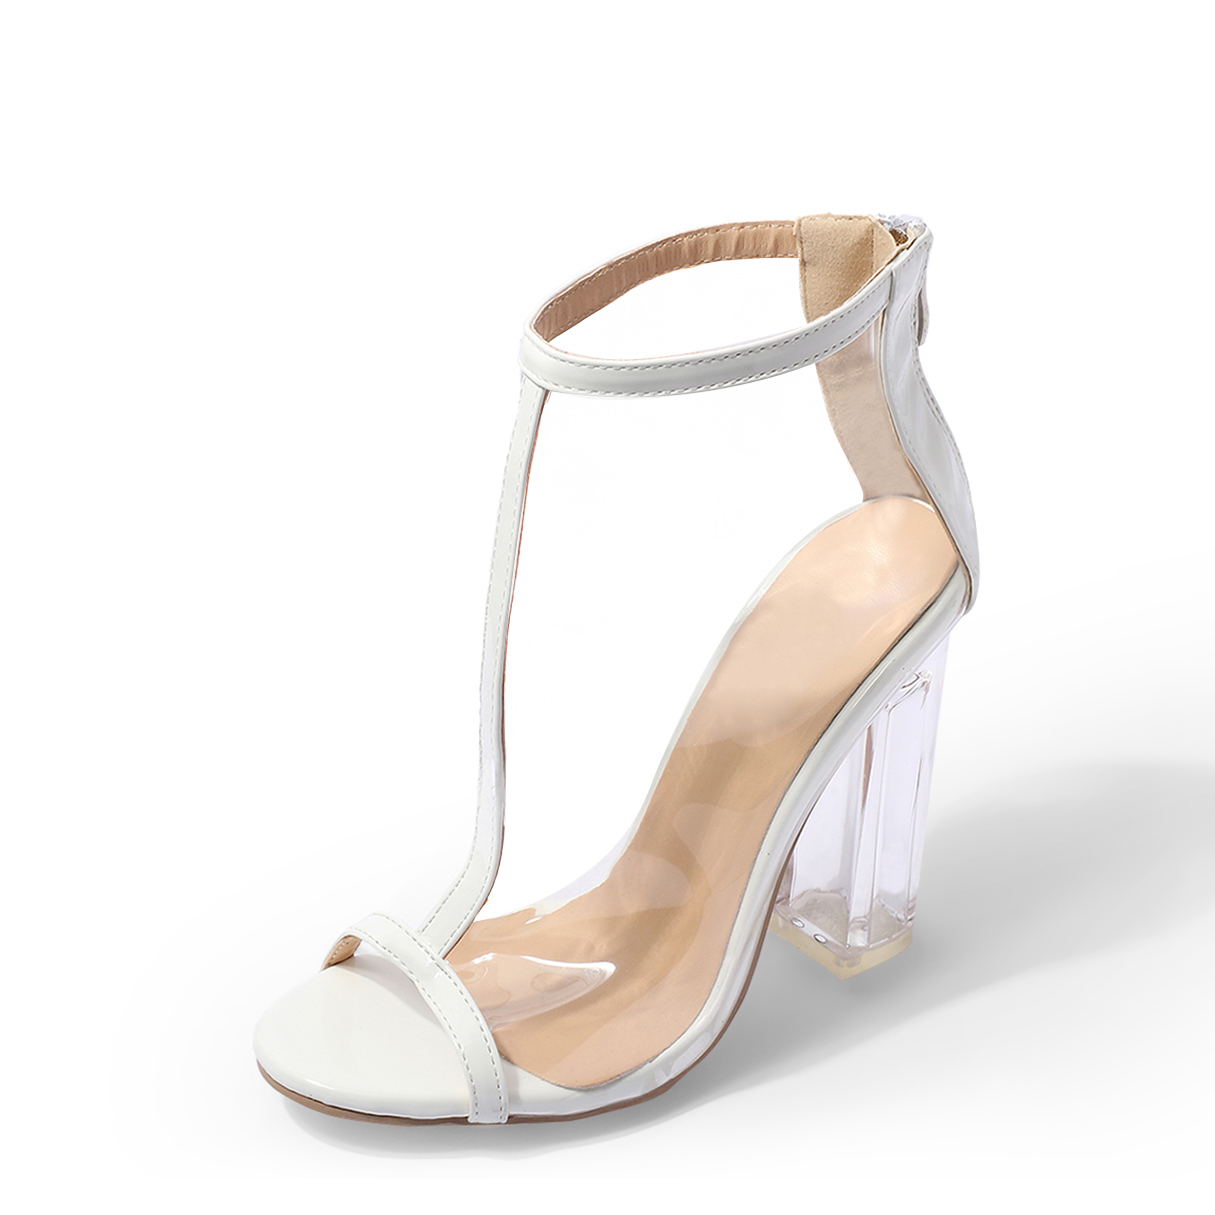 White T-strap Peep Toe Transparent Sandals with Chunky Heels closed toe v cut chunky heels mauve